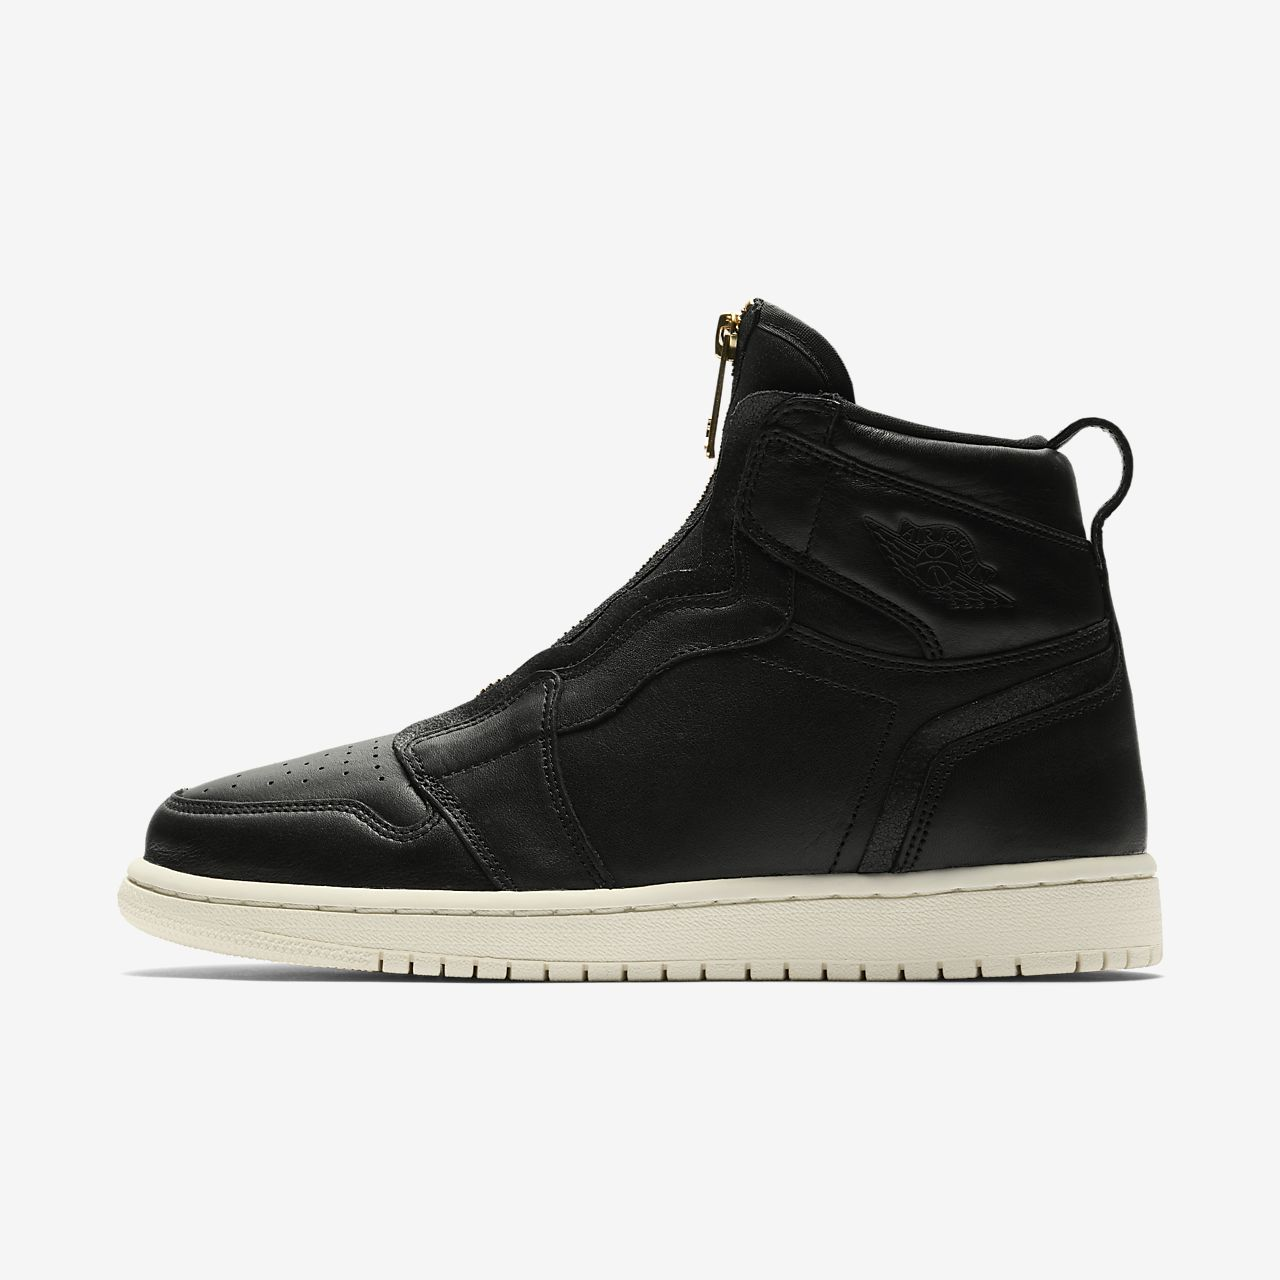 Dámská bota Air Jordan 1 High Zip